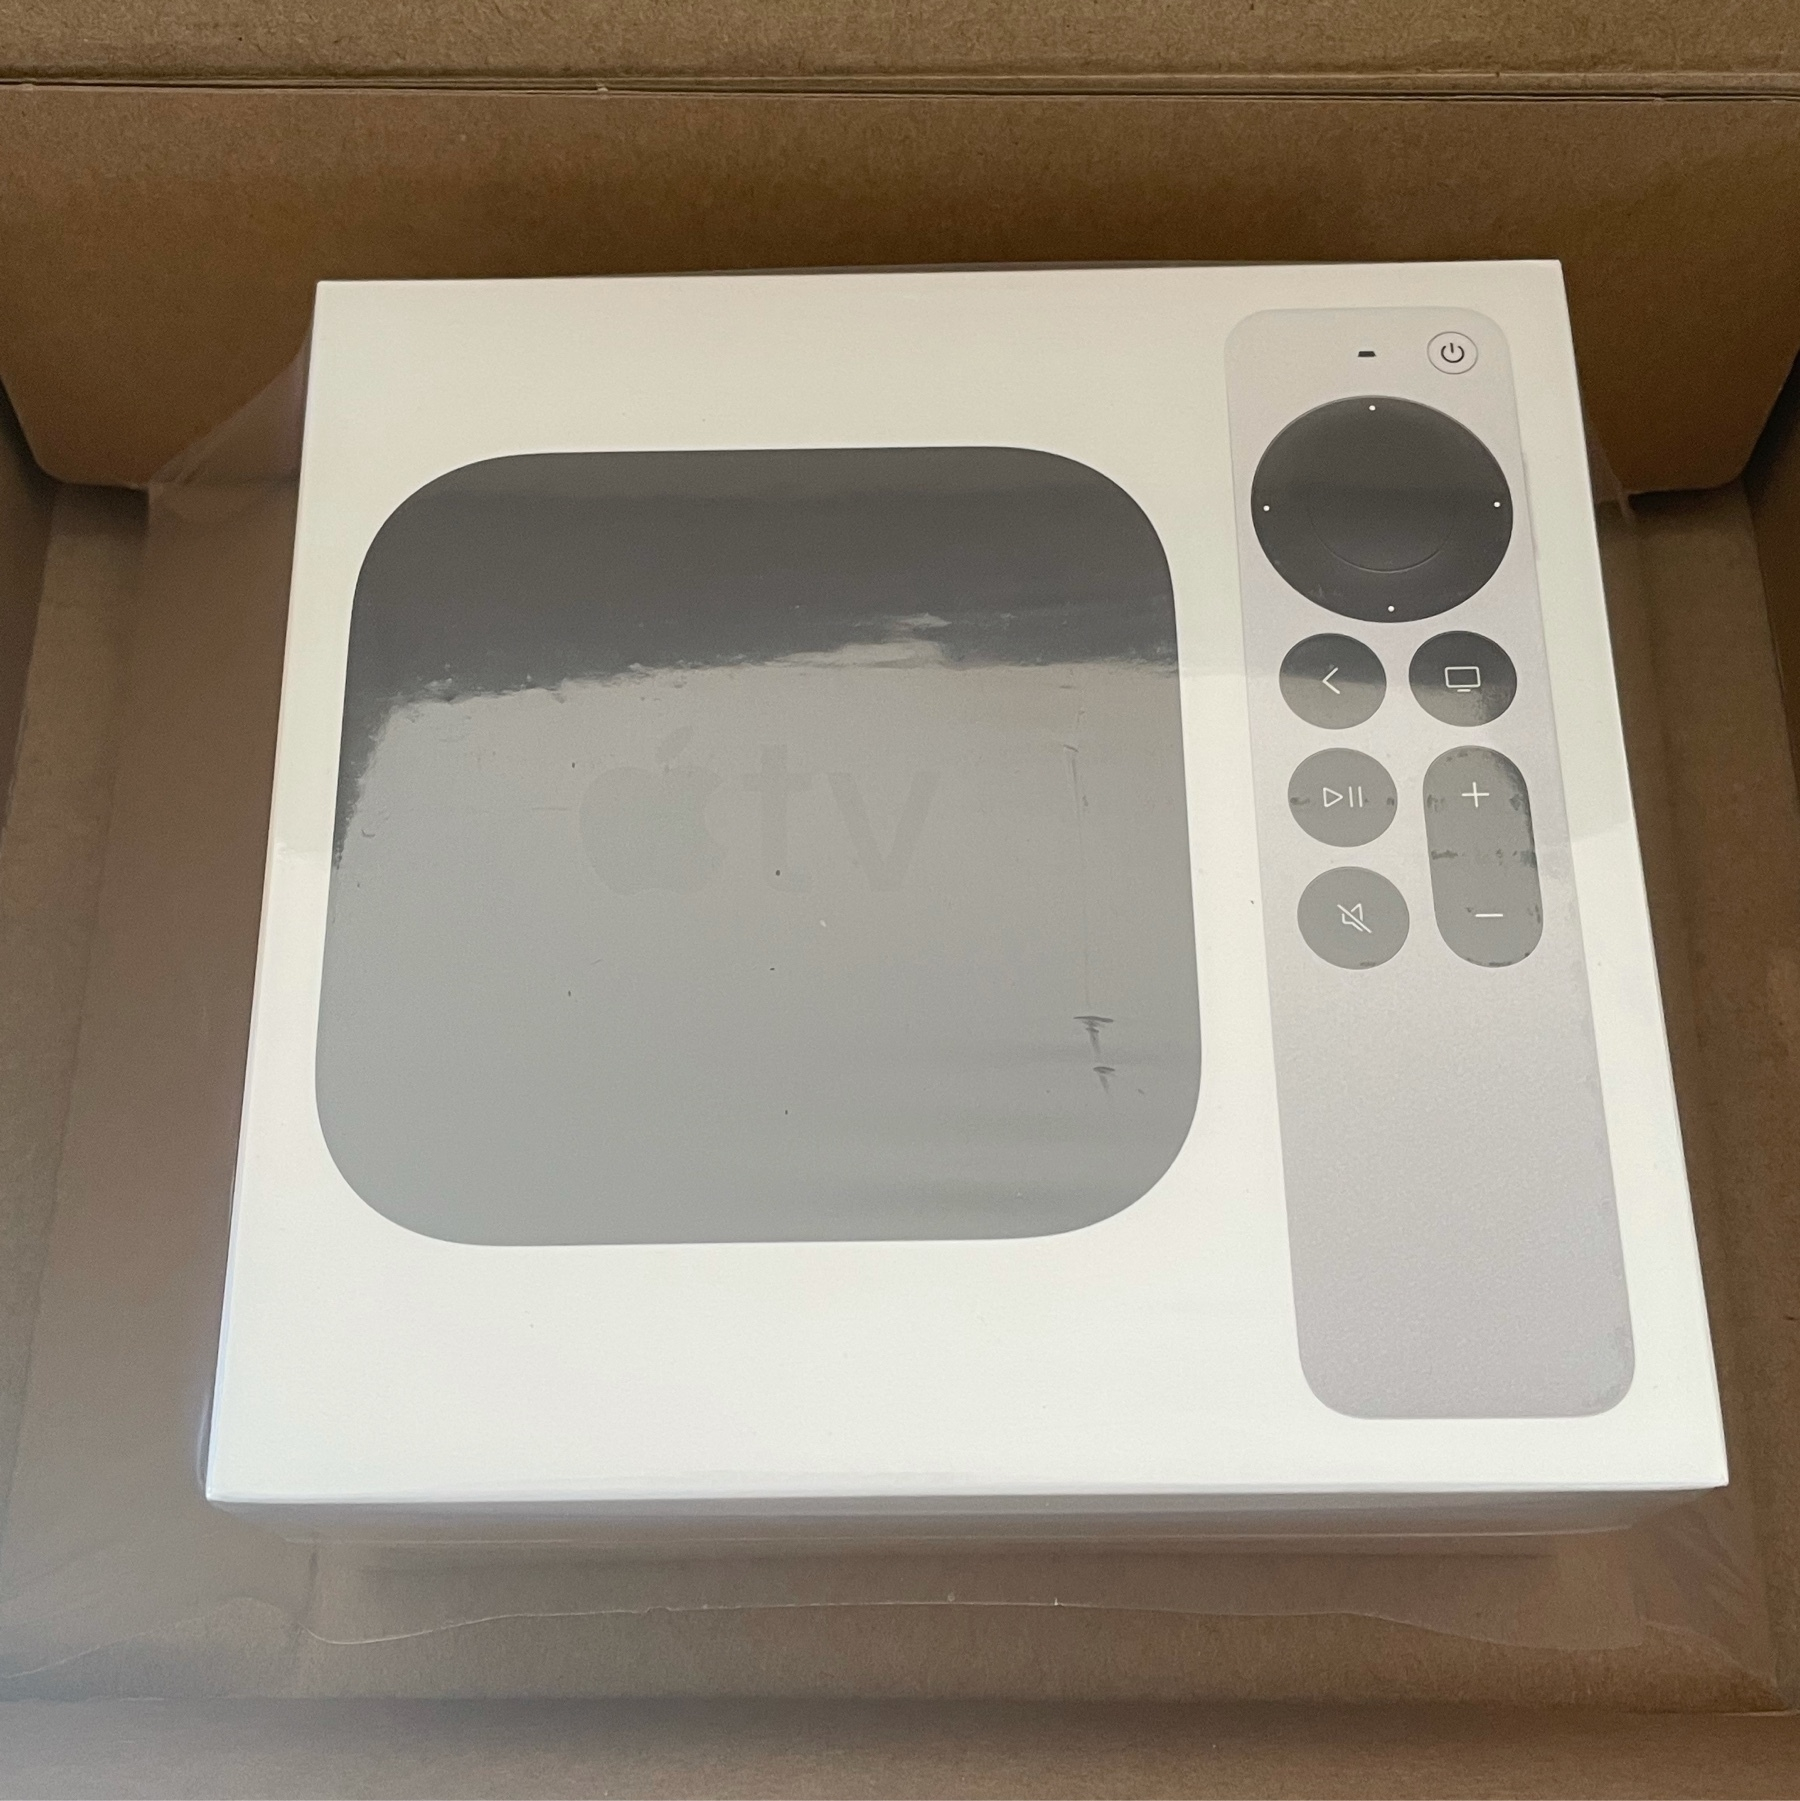 My new Apple TV just arrived!